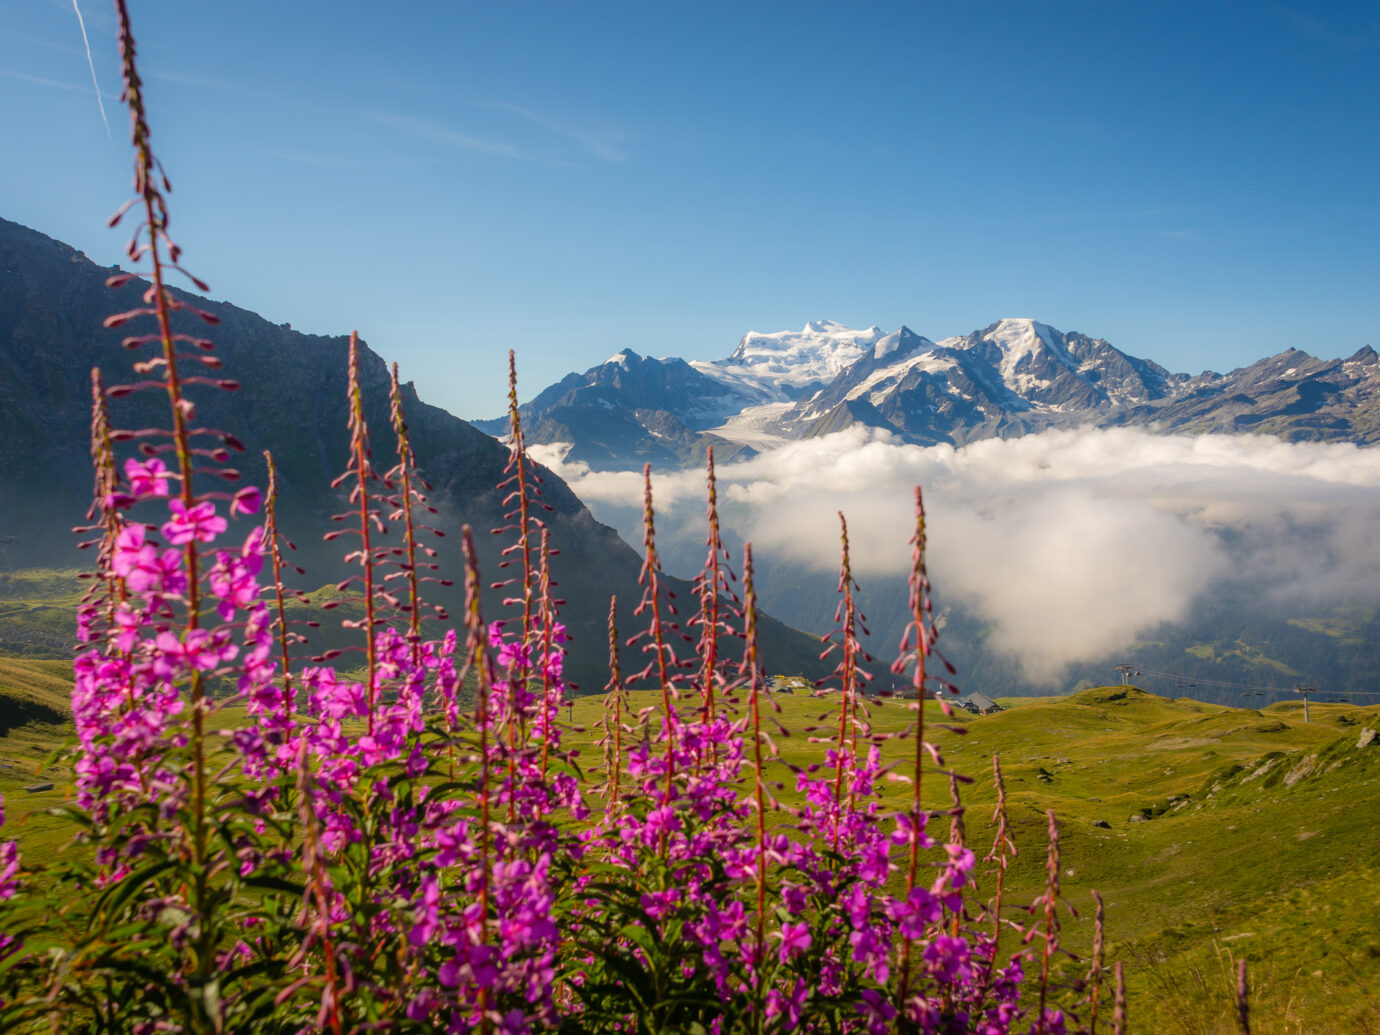 Purple fireweed flowers growing in a meadow above the tourist destination of Verbier in the Swiss alps.